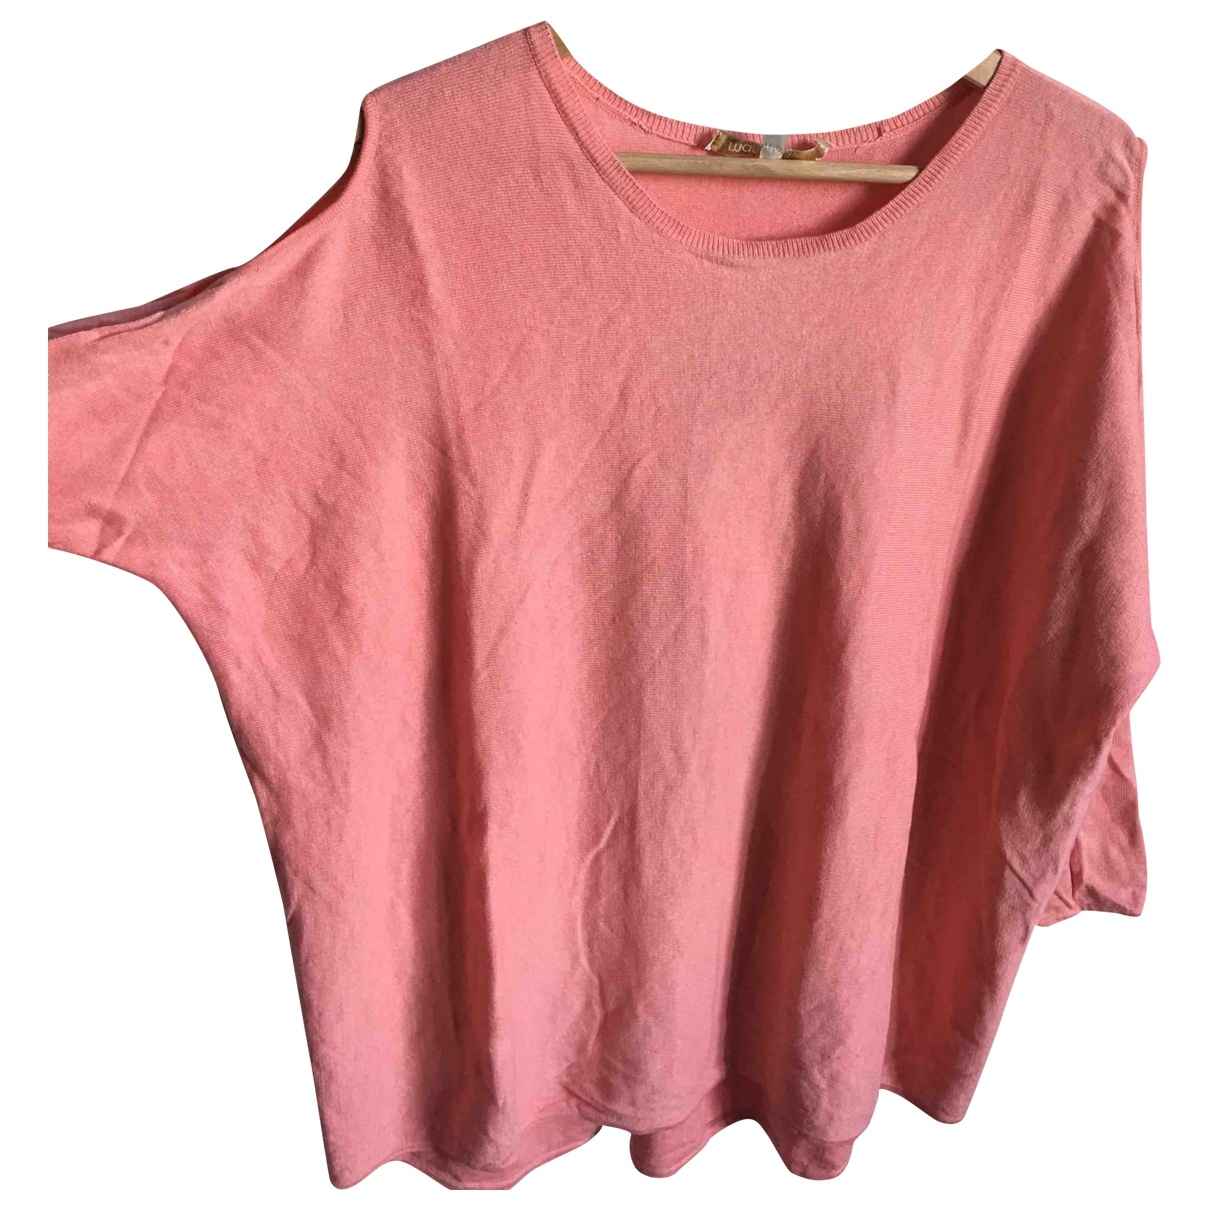 Maje \N Pink Cashmere Knitwear for Women One Size FR